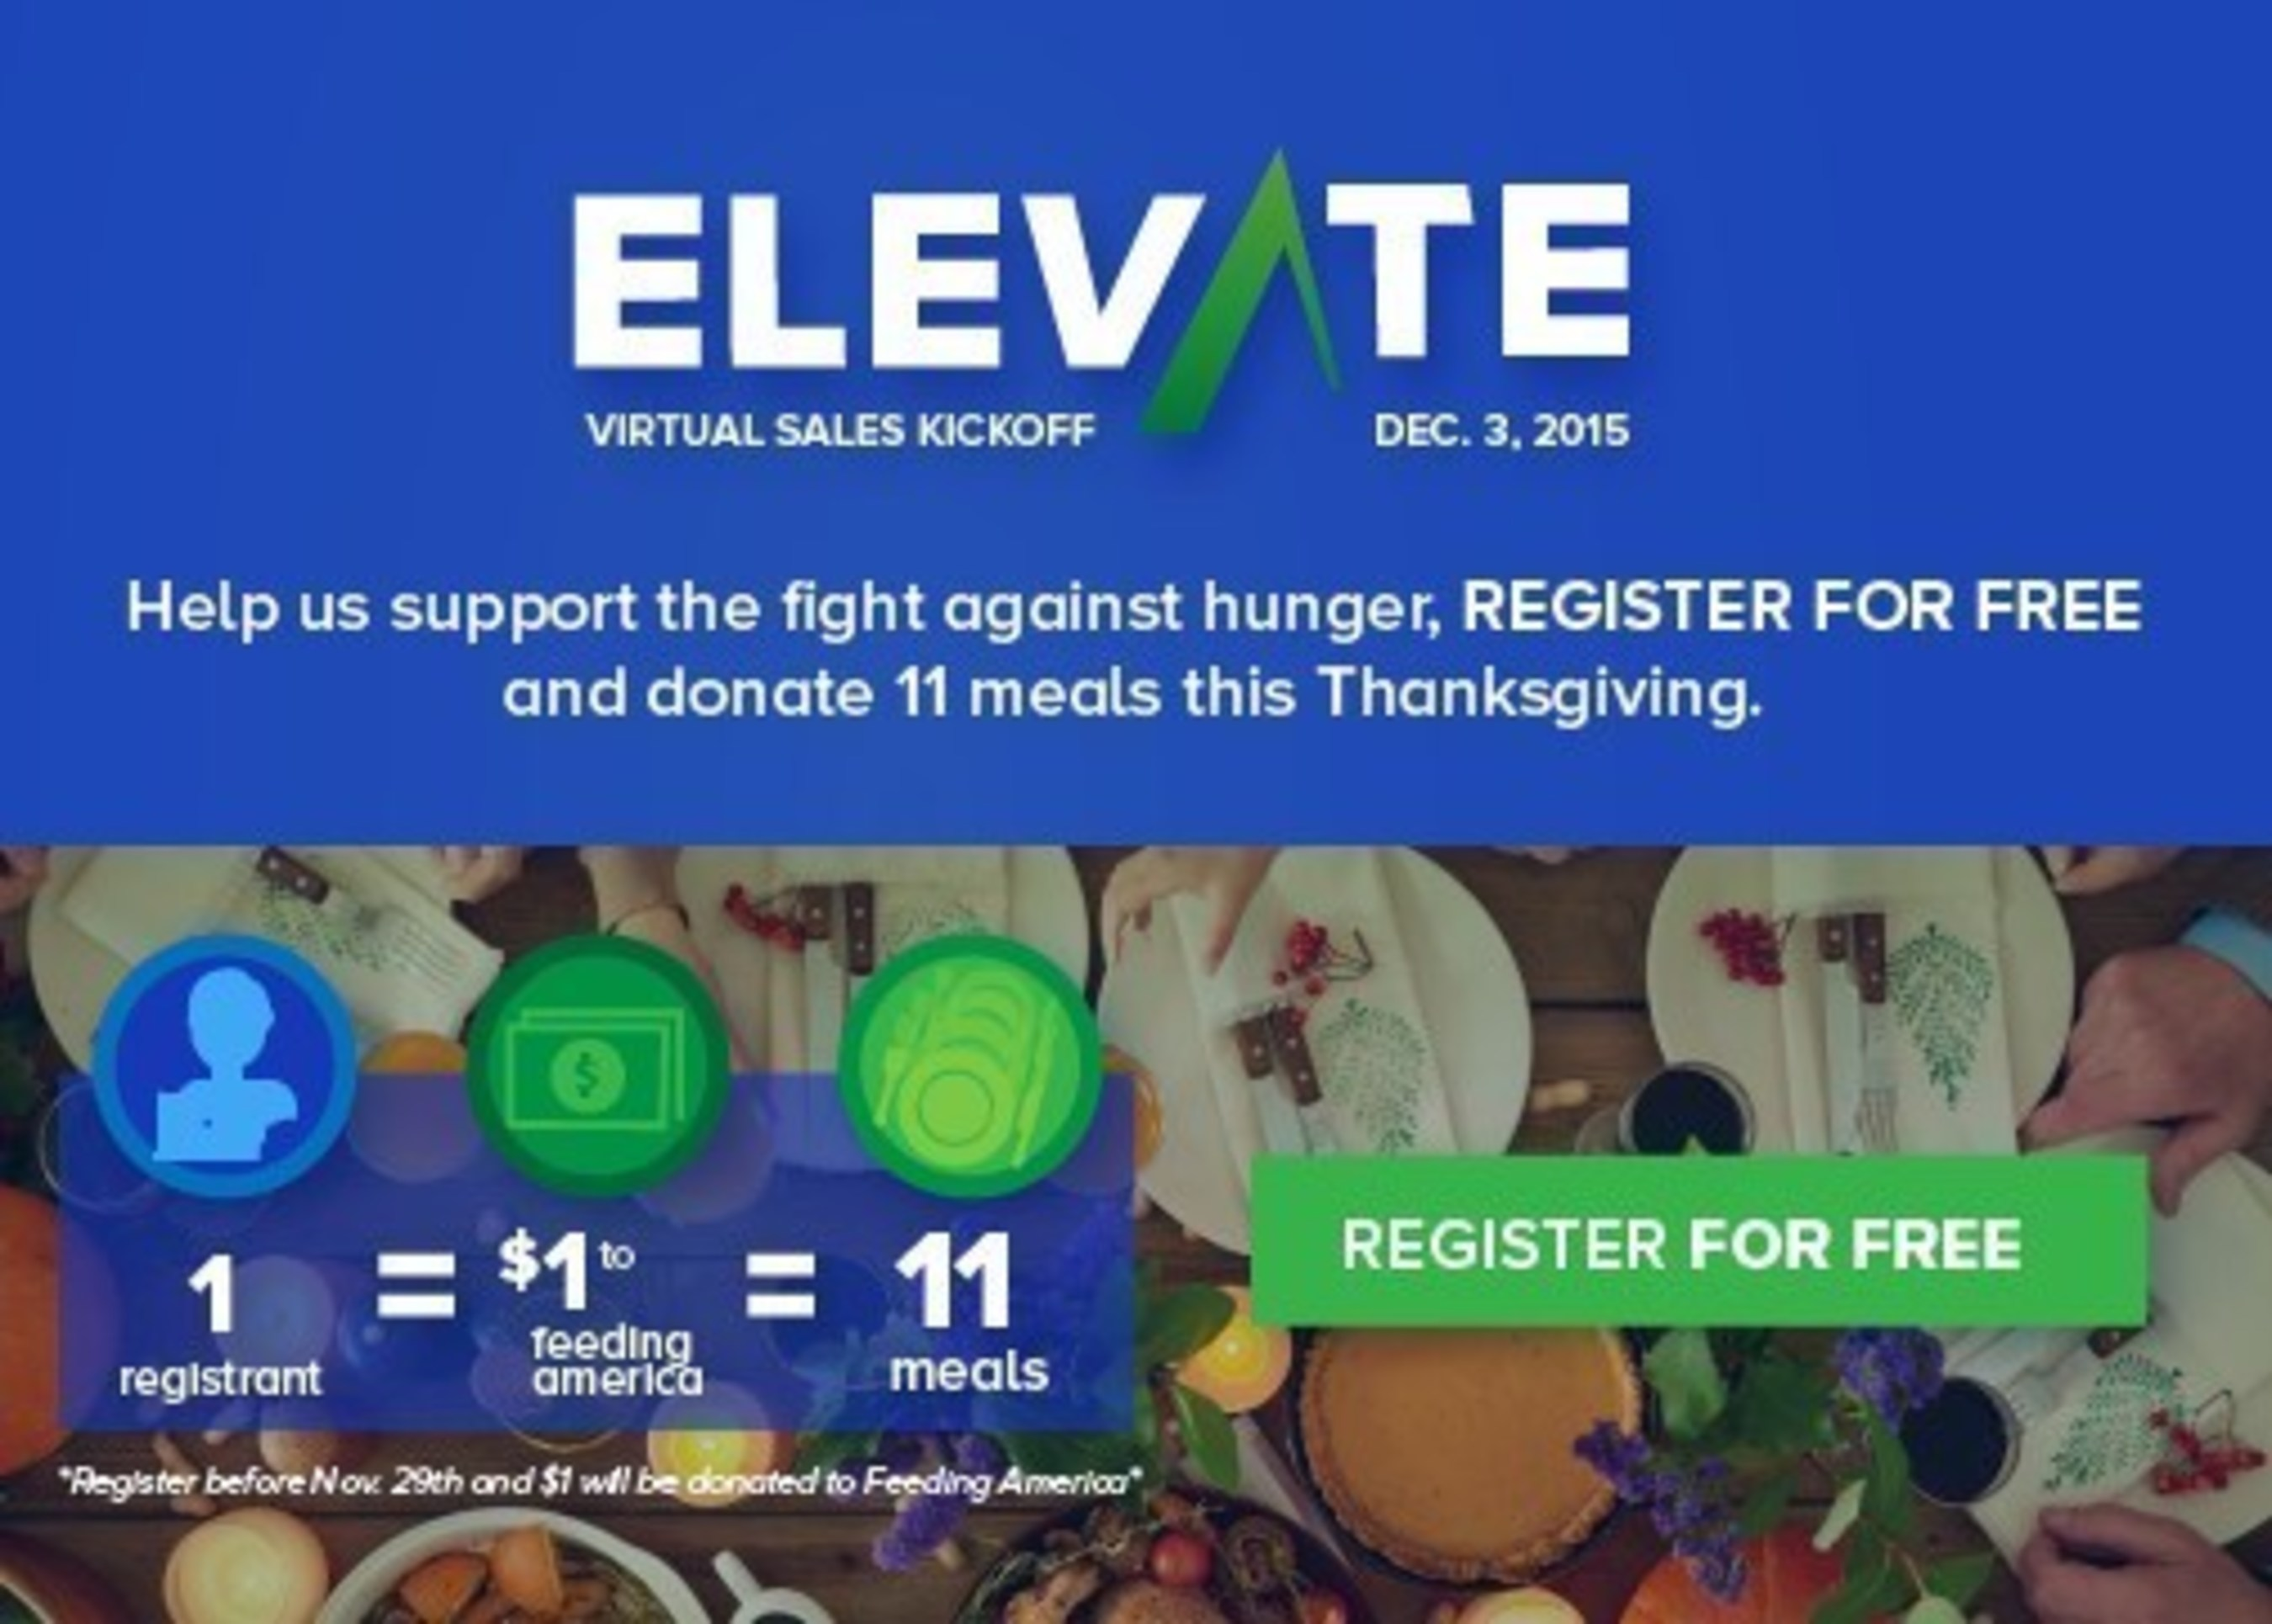 Velocify and AA-ISP Join the Fight Against Hunger: Register for ELEVATE Virtual Sales Kickoff and $1 Will Go to Feeding America